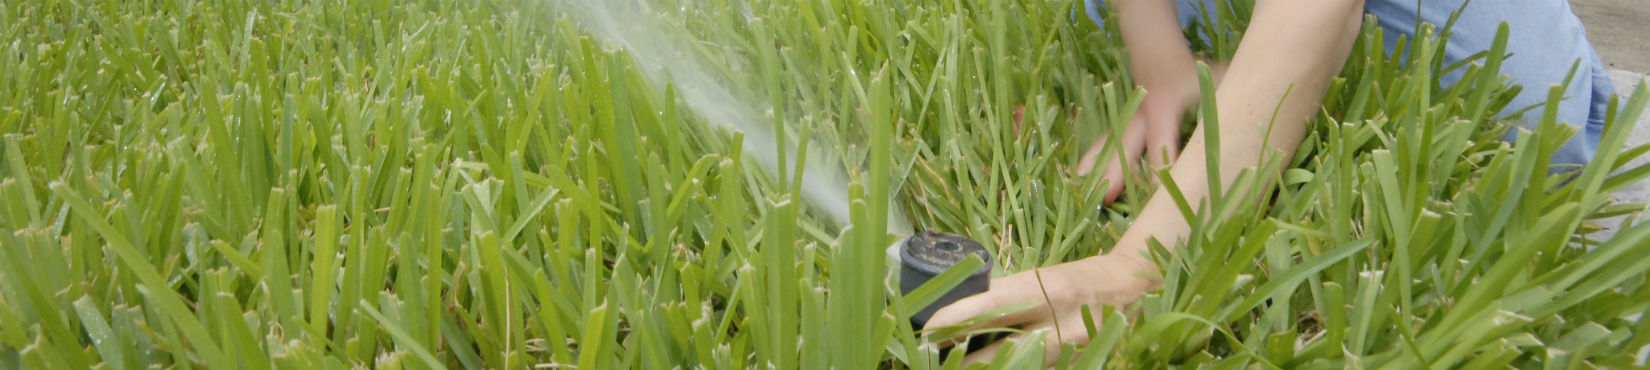 hands adjusting an irrigation rotor head in green grass